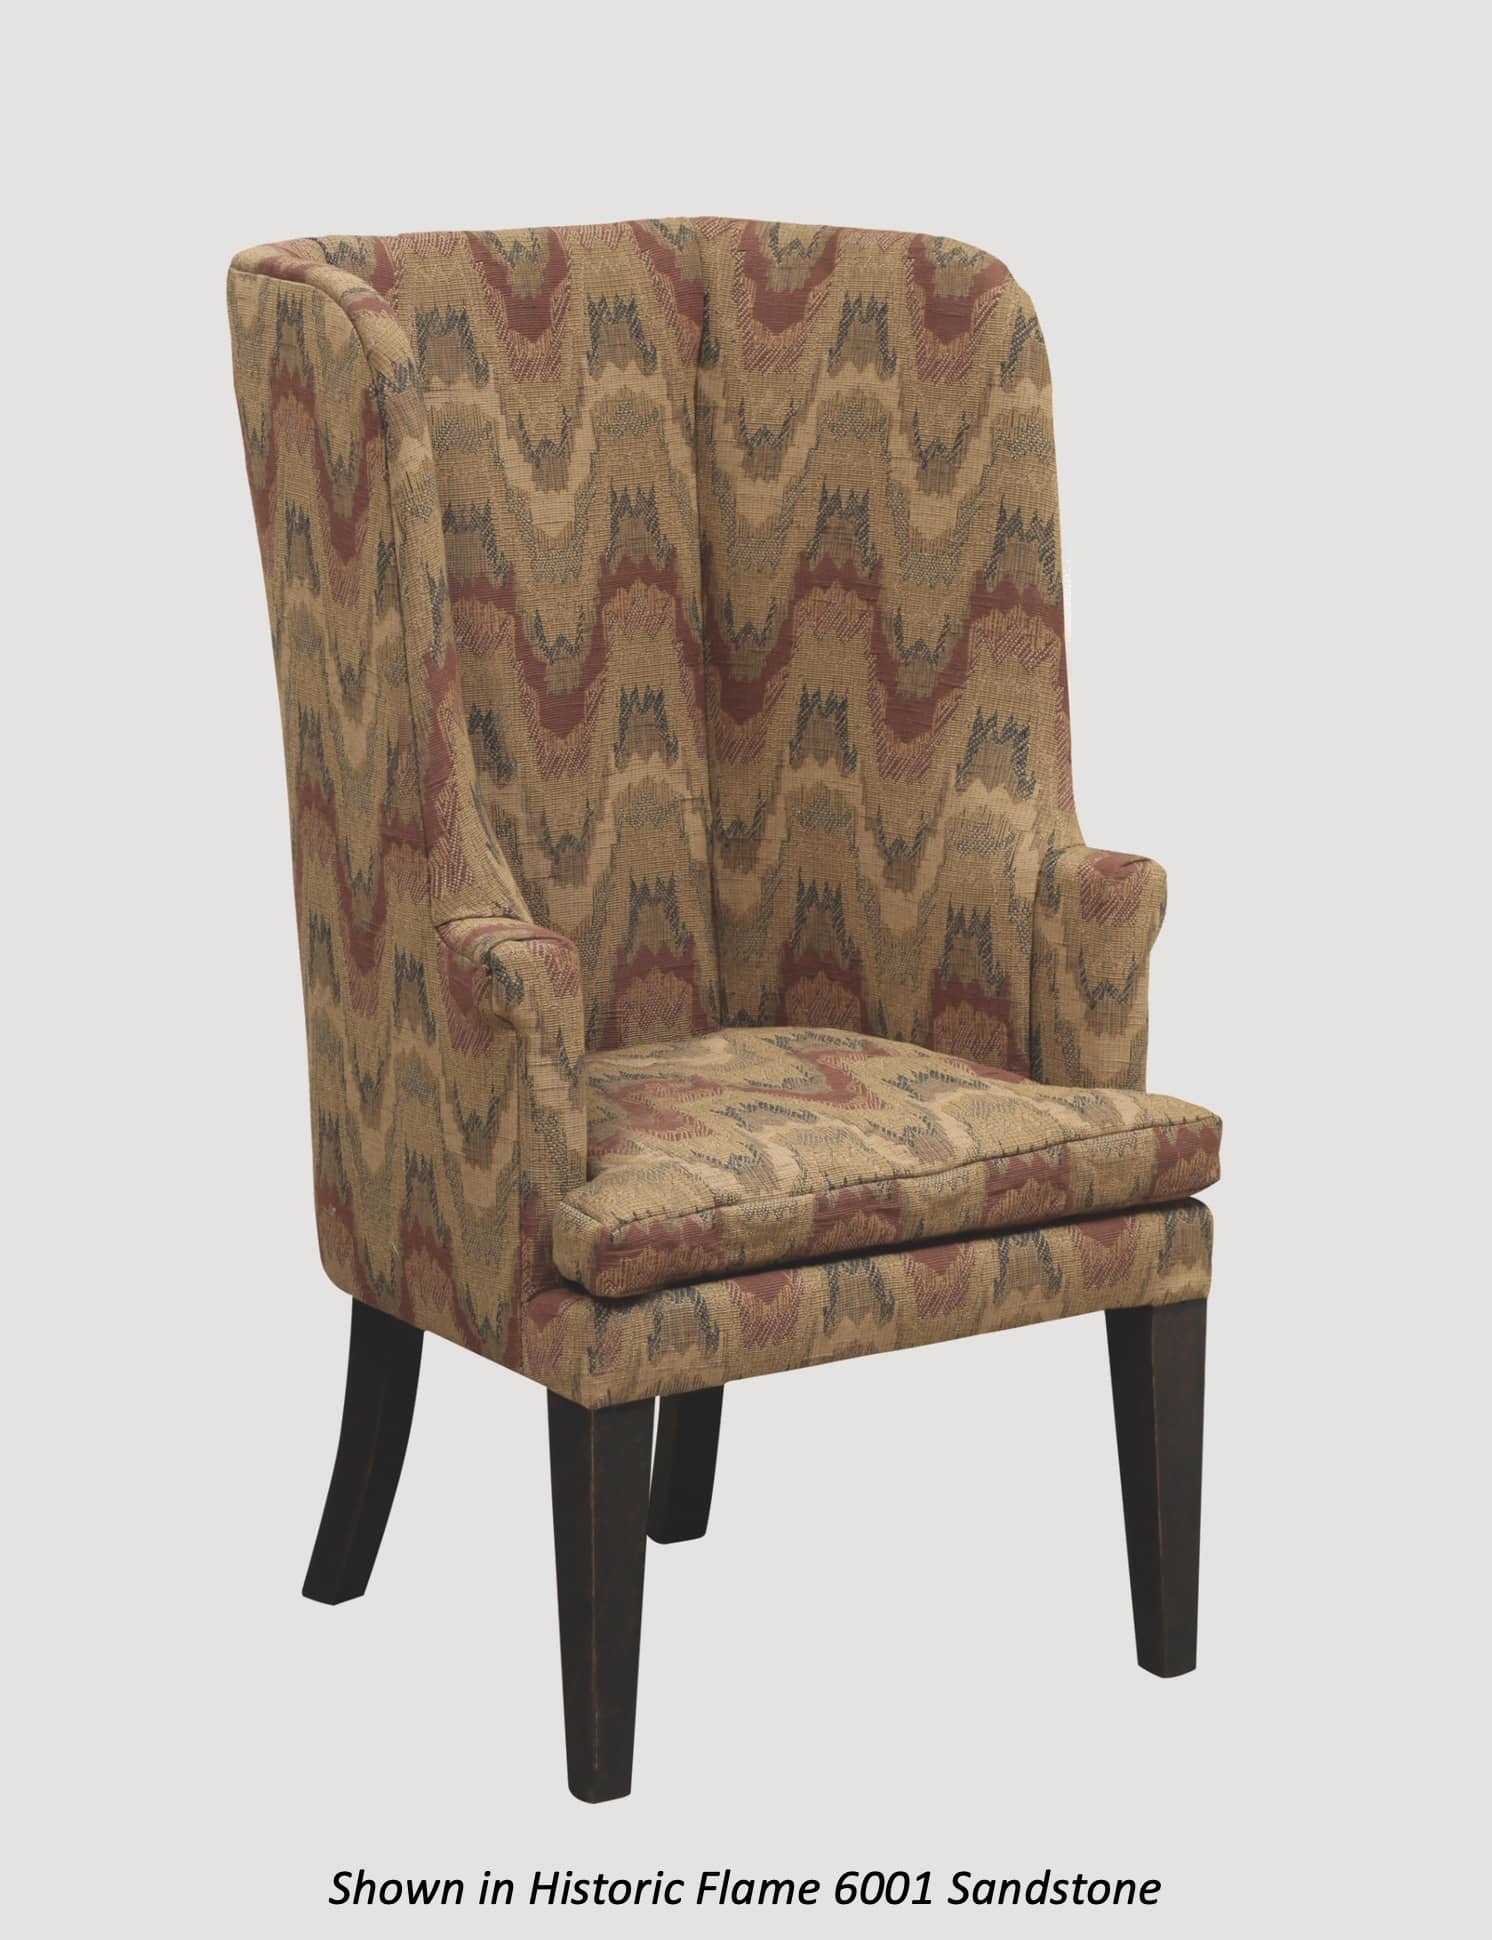 Town & Country Furnishings Barrel Chair